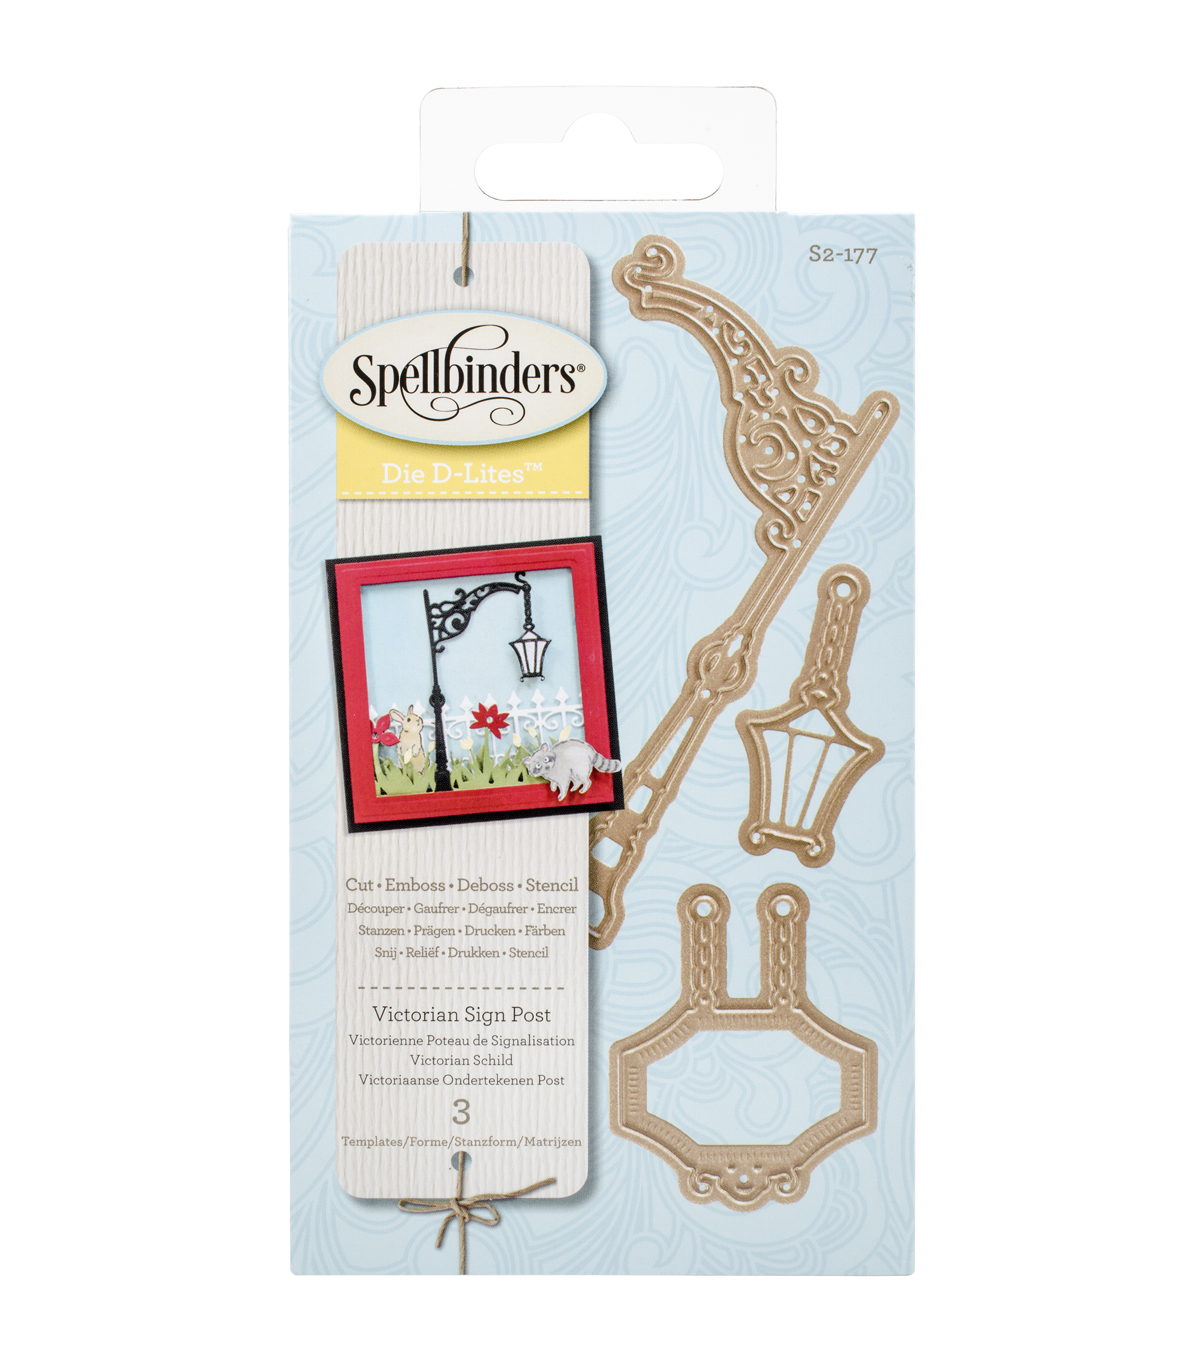 Spellbinders® Shapeabilities Die D-Lites-Victorian Sign Post